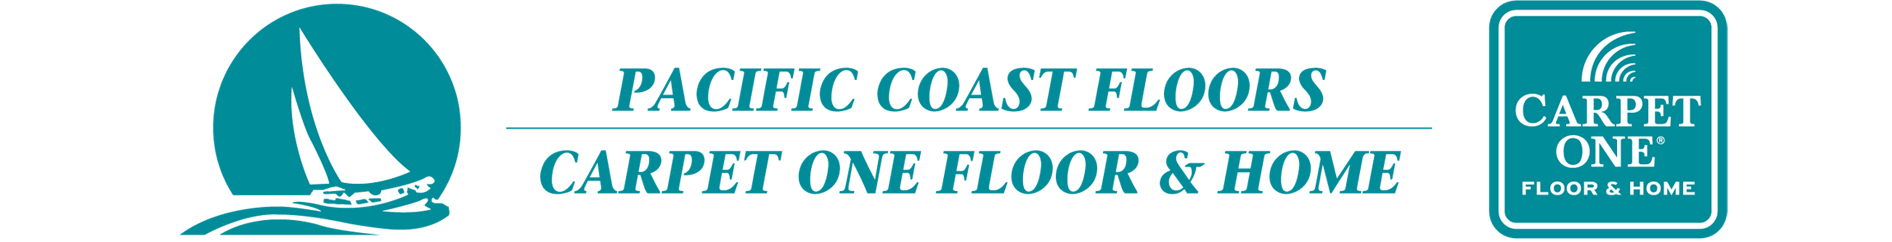 Pacific Coast Floors Carpet One Retina Logo